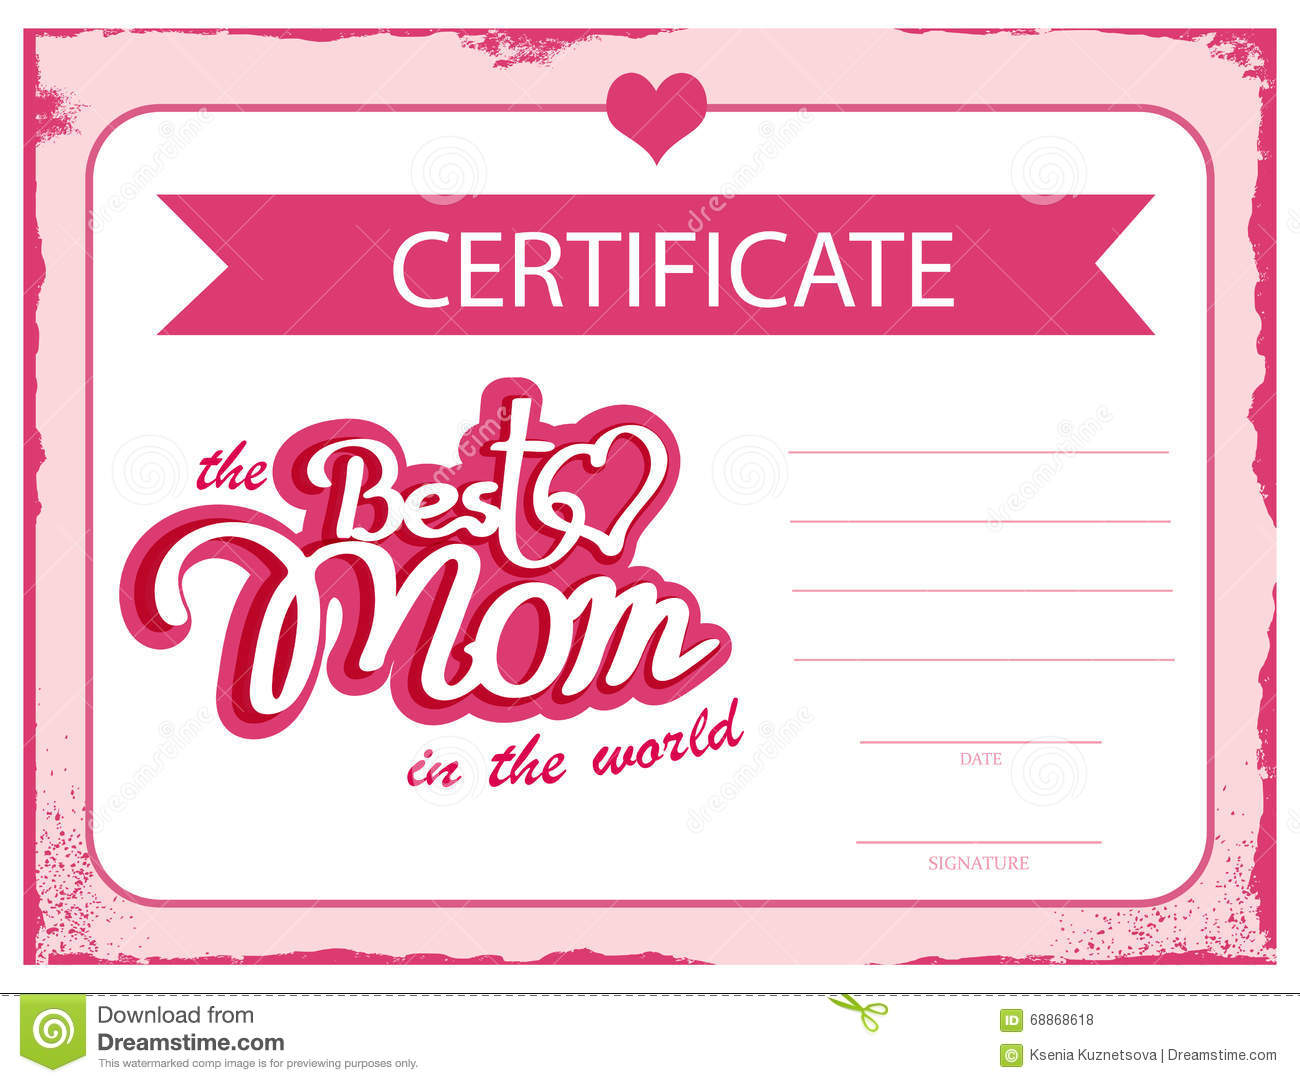 Template vector certificate best mom in the world a gift template vector certificate best mom in the world a gift certificate for mothers day a diploma template royalty free vector yelopaper Image collections